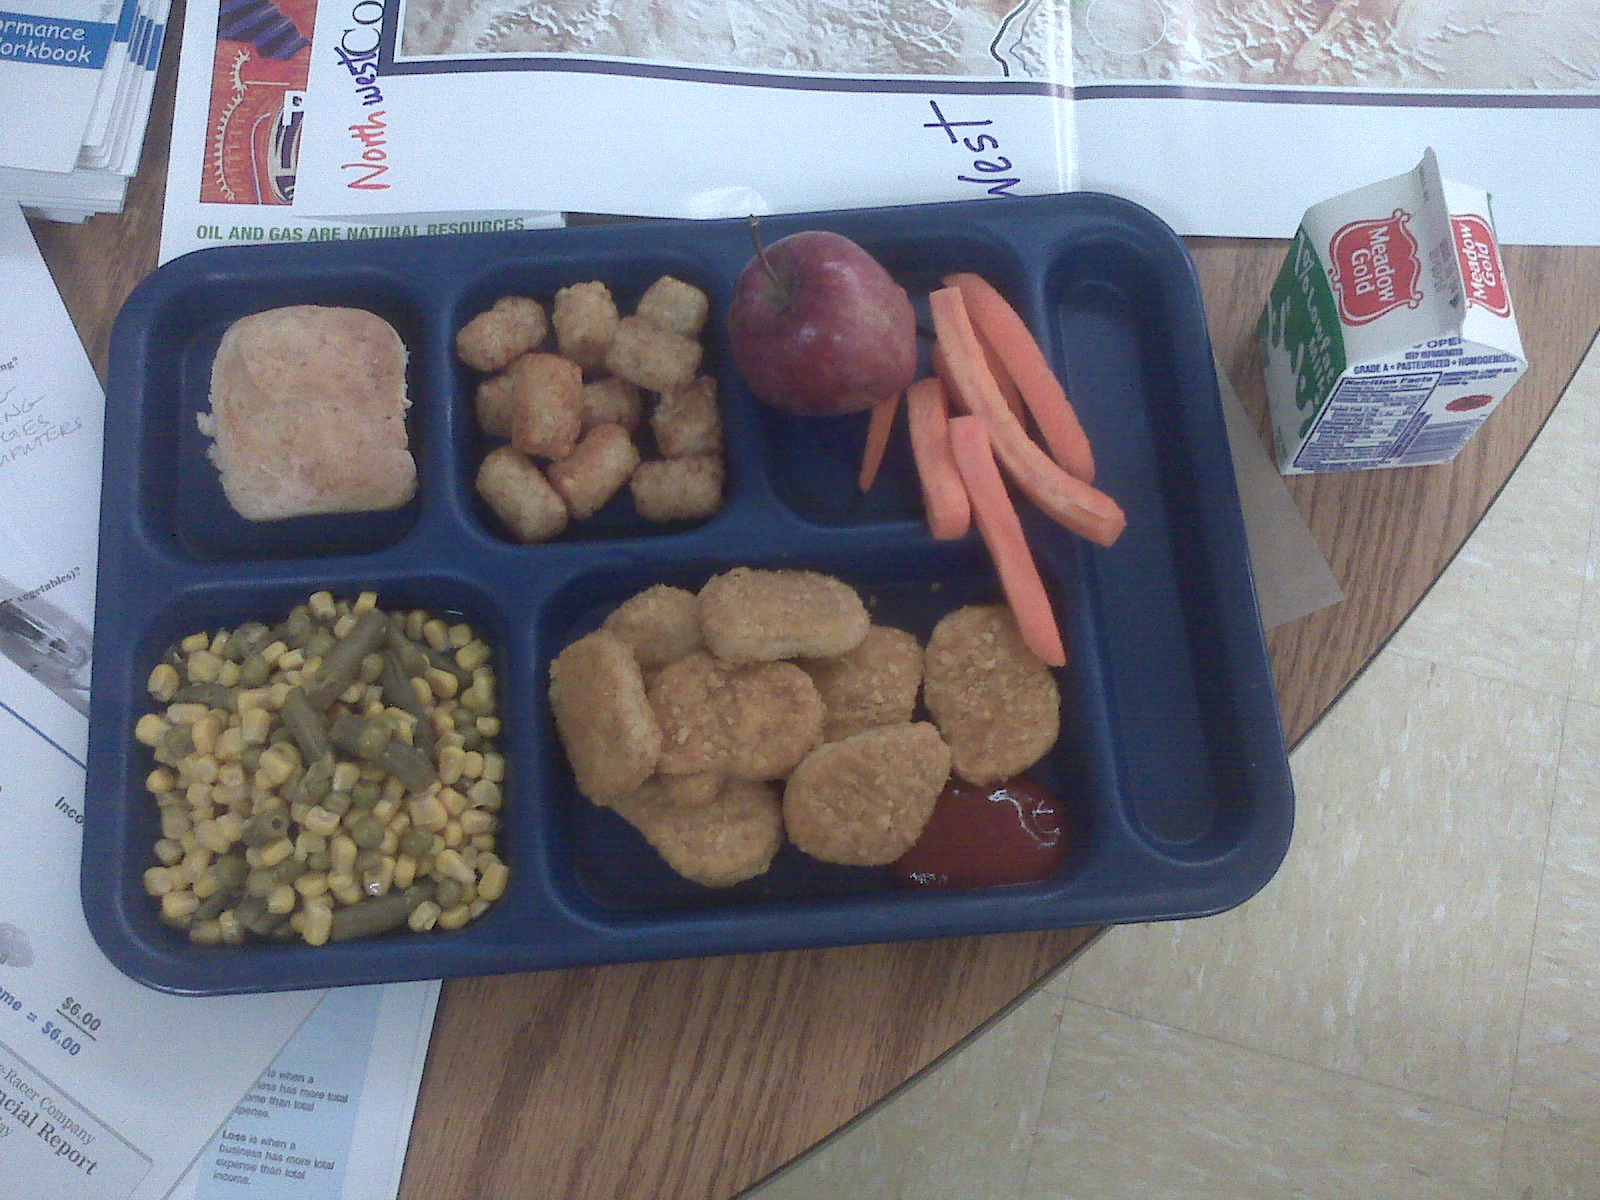 Guest blogger: Denver area school lunch experience | Fed Up